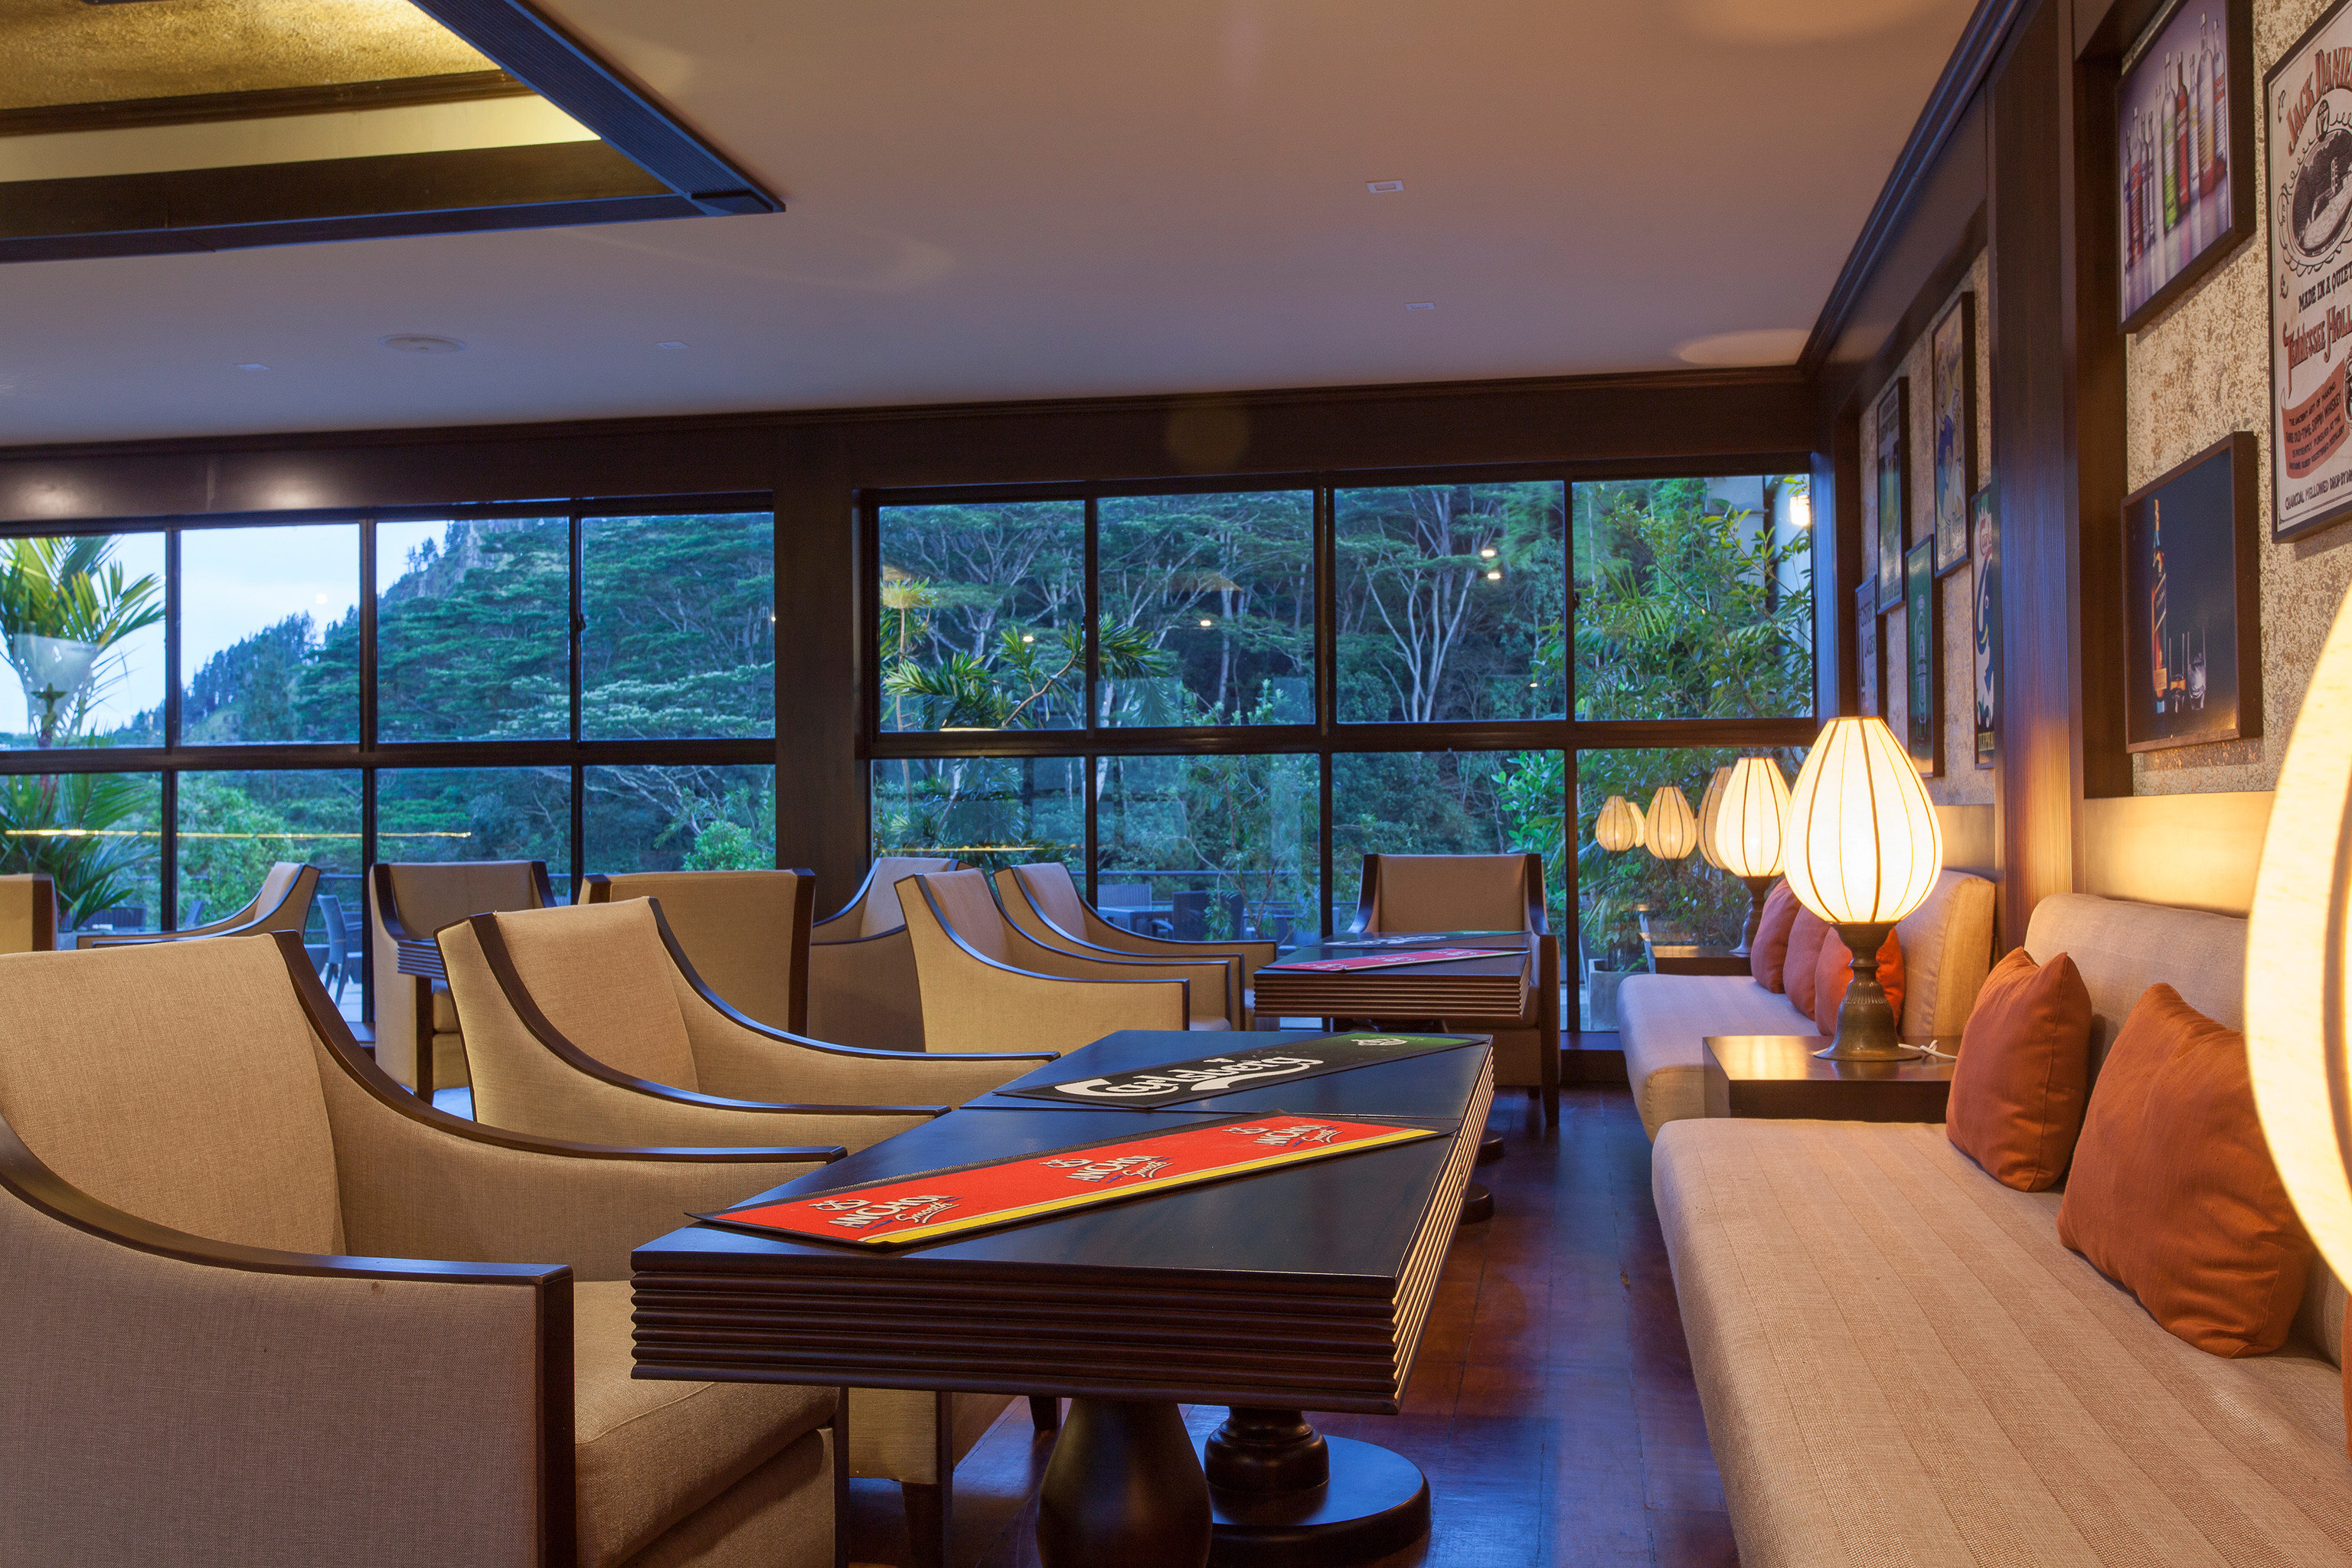 property Resort house home Villa condominium living room Suite swimming pool cottage Modern dining table